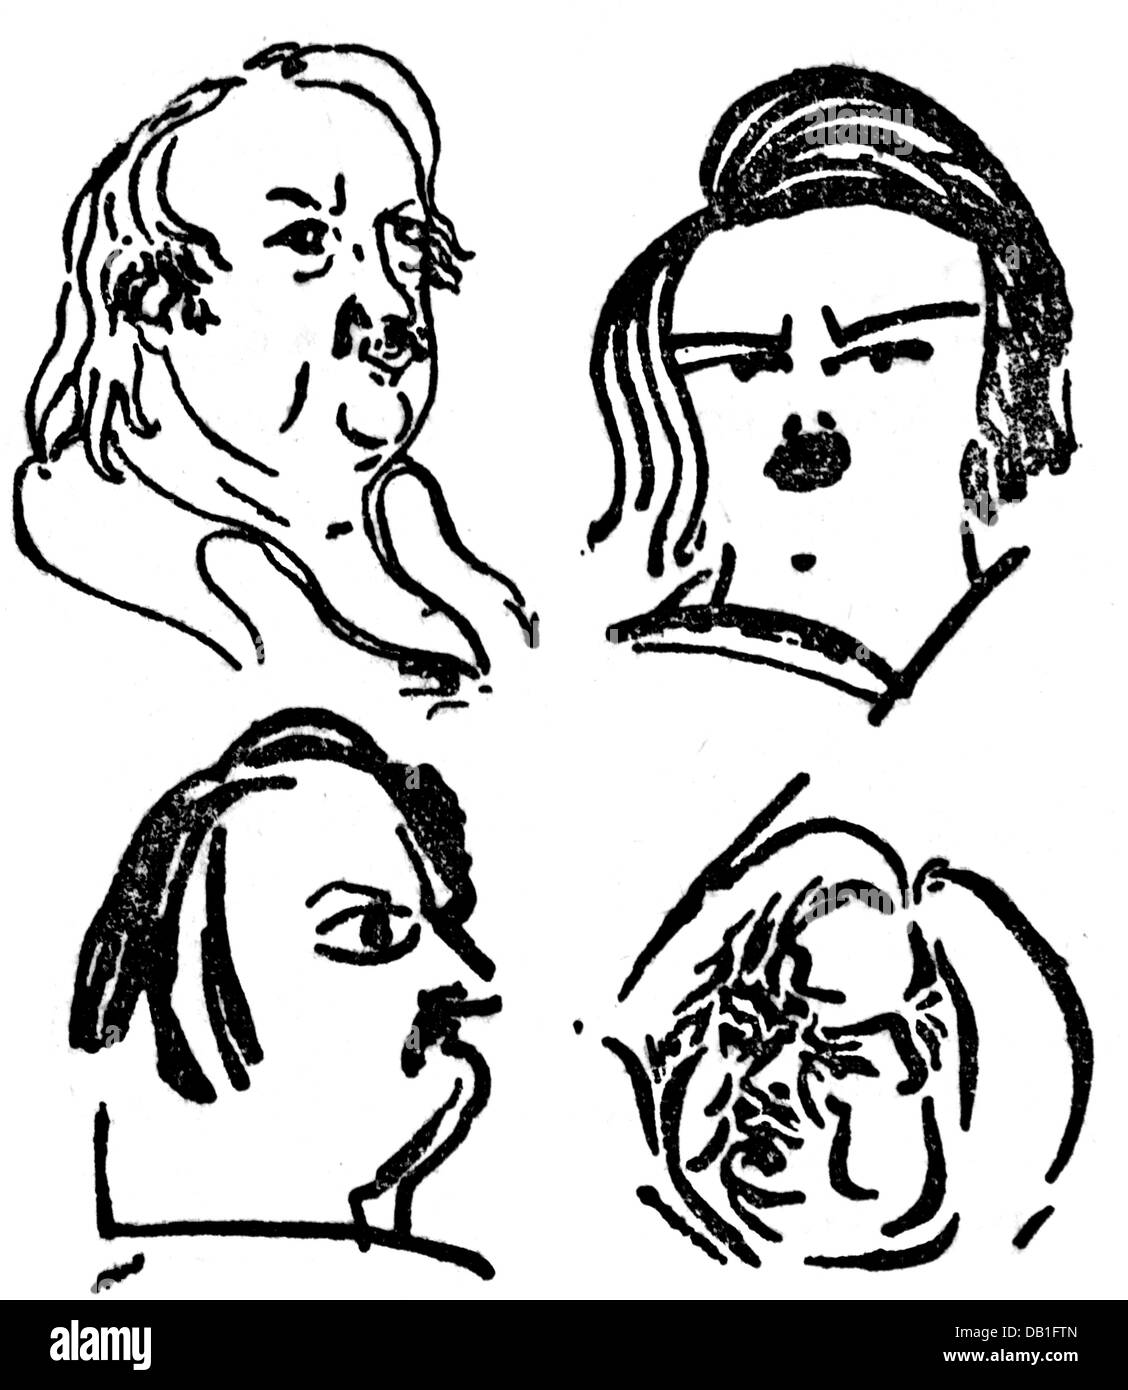 Balzac, Honore de, 20.5.1799 - 18.8.1850, French author / writer, portrait, four caricatures, Additional-Rights - Stock Image